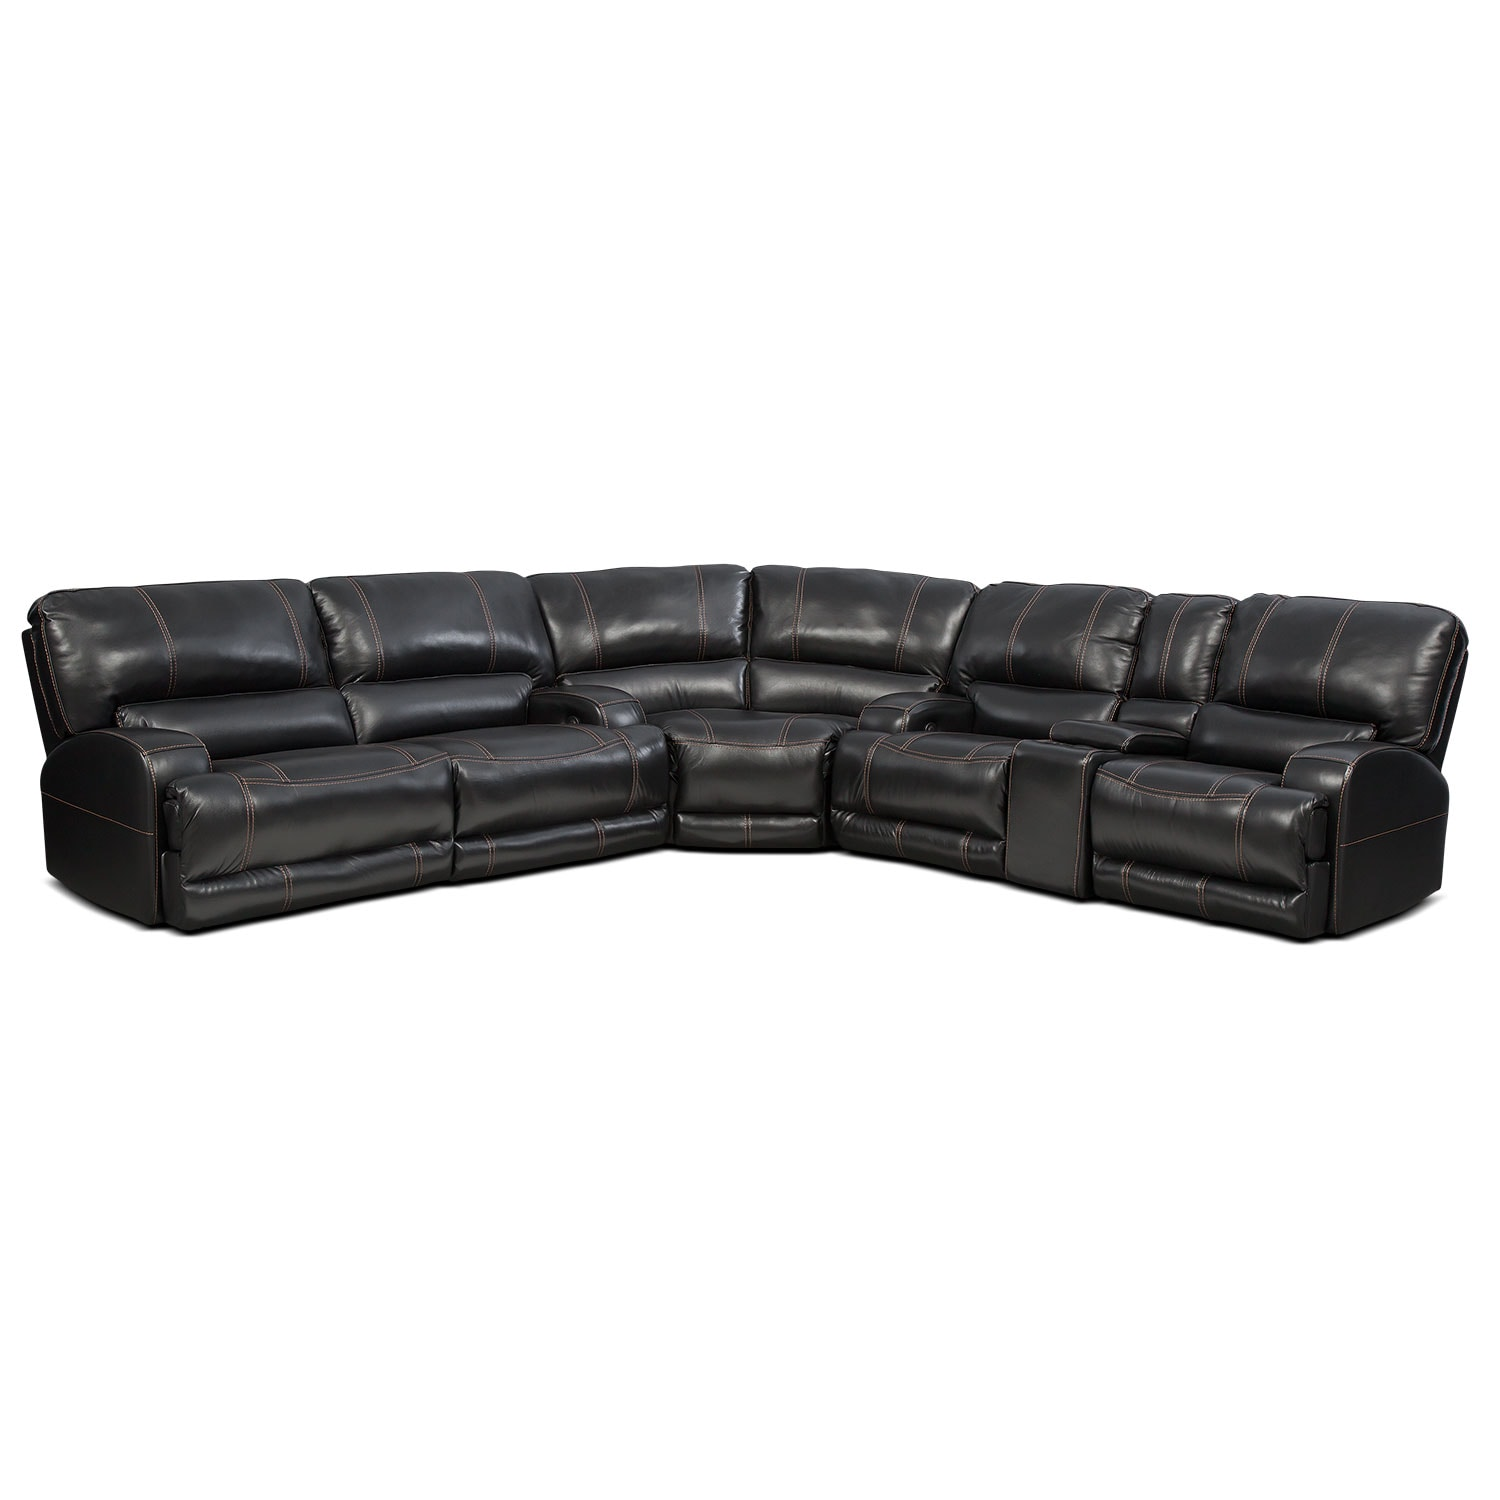 Barton 3-Piece Power Reclining Sectional with 1 Console - Black